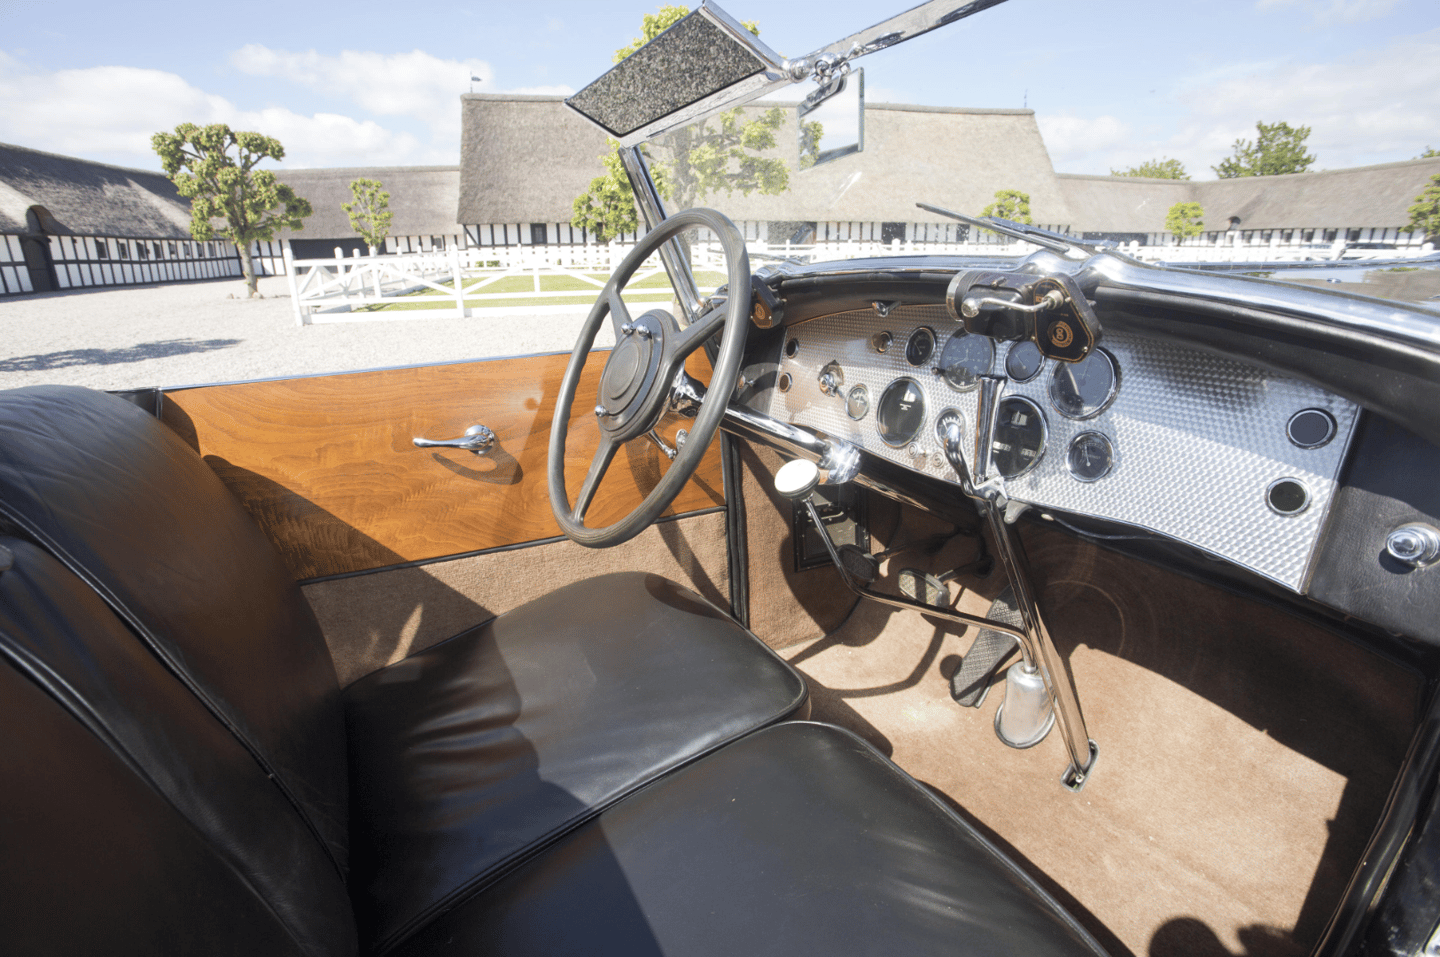 Purchased new by Shirley Carter Burden (Great grandson of C. Cornelius Vanderbilt) this 1930 Duesenberg Model J Disappearing Top Roadster sold for DKK17,825,000 (US$2,674,941) at Bonham's Frederiksen Collection auction on 26 September, 2015